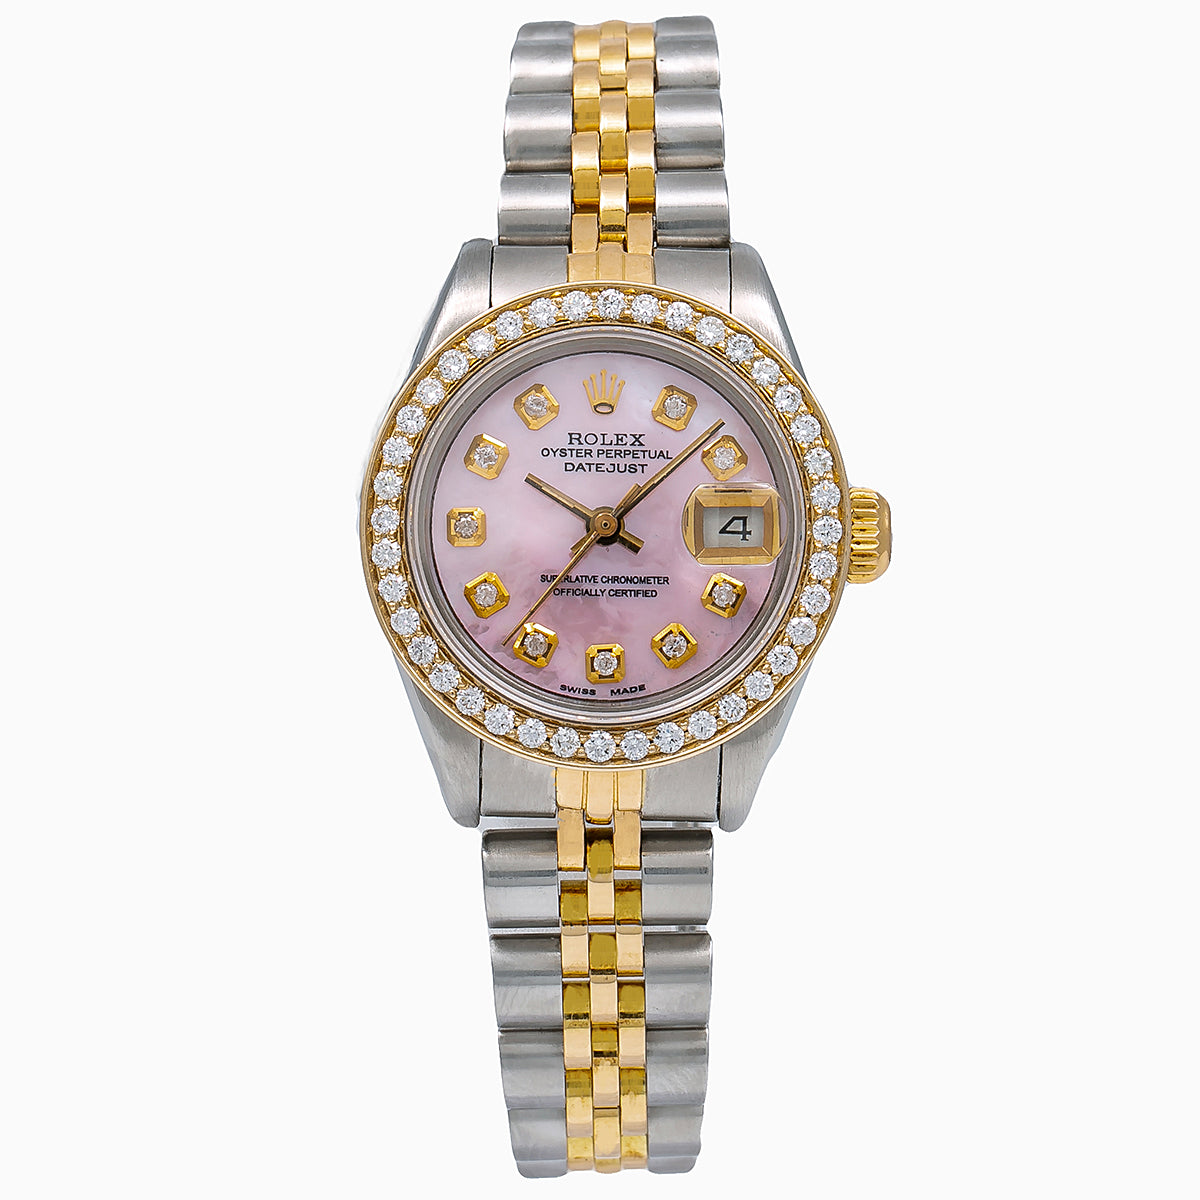 Rolex Datejust Diamond Watch, 69173 26mm, Pink Diamond Dial With 0.90 CT Diamonds